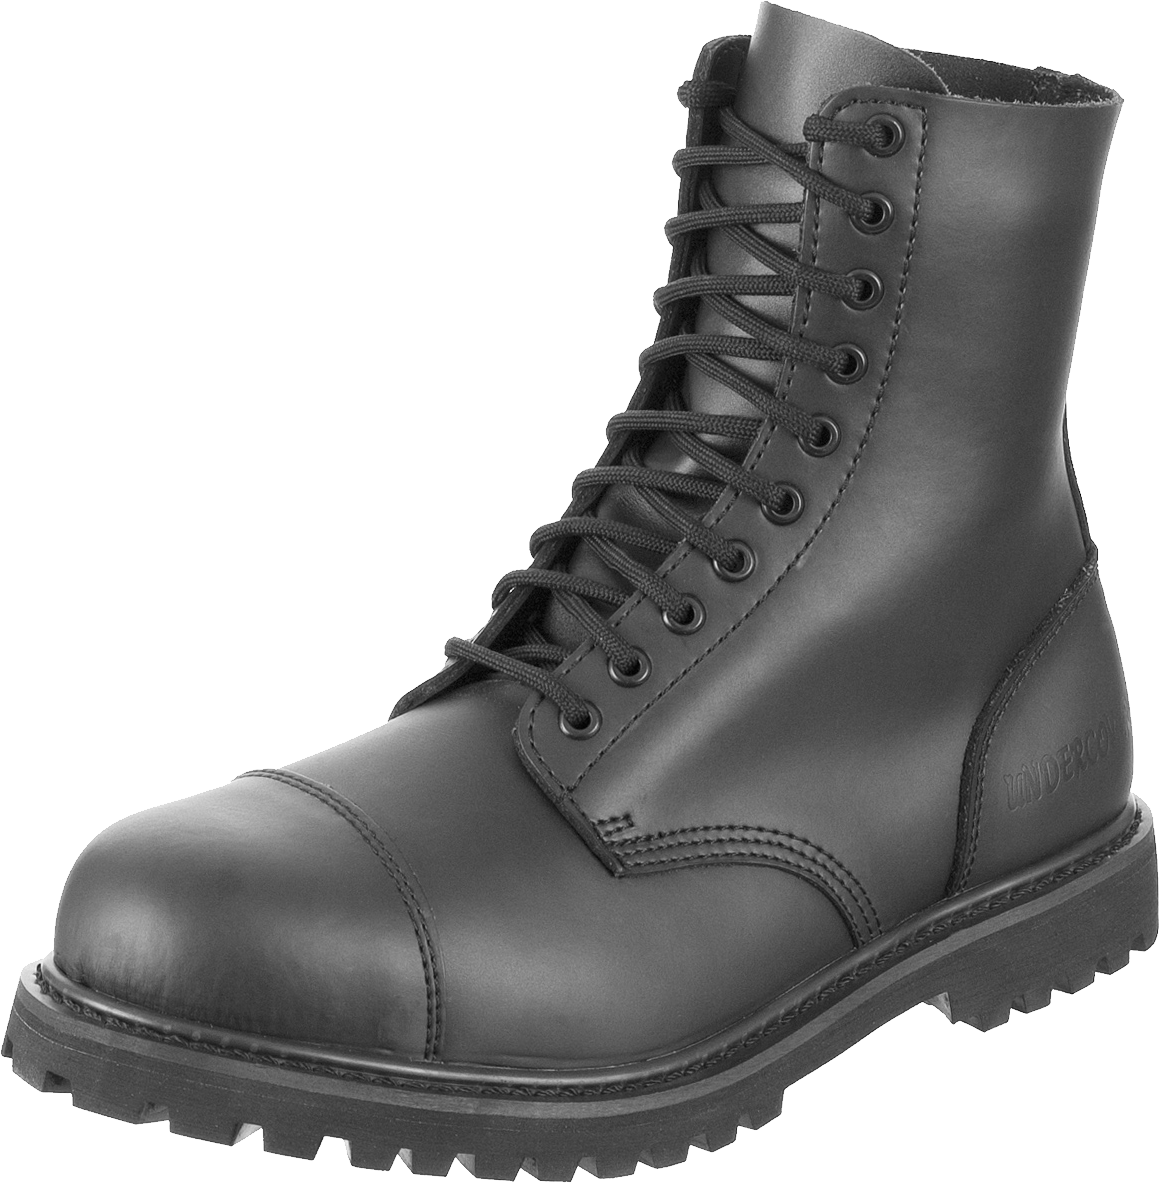 Black army Boots PNG Image.